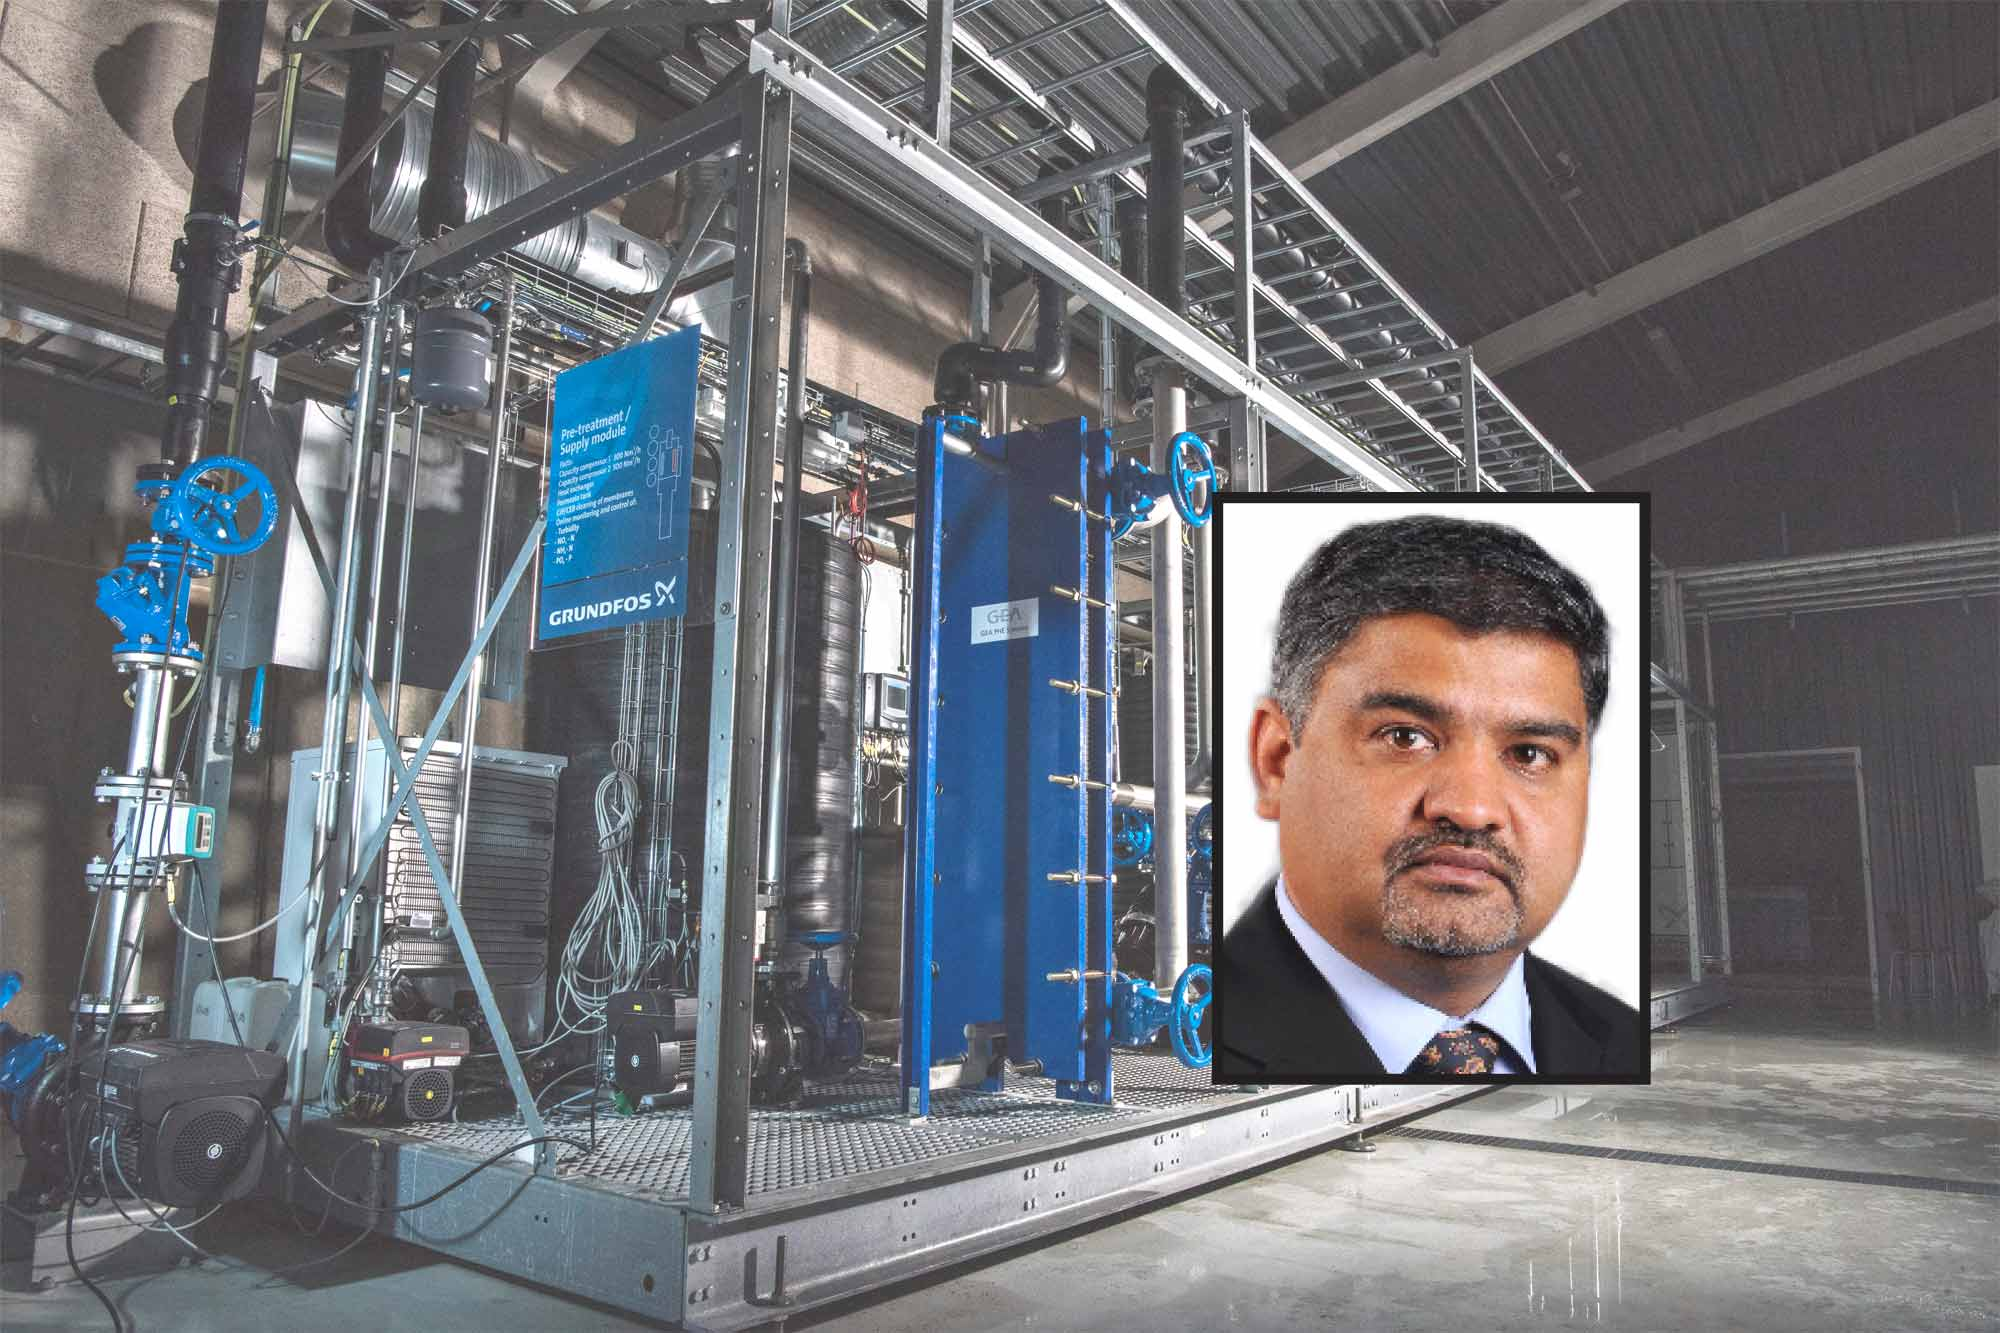 BioBooster: A solution for wastewater treatment